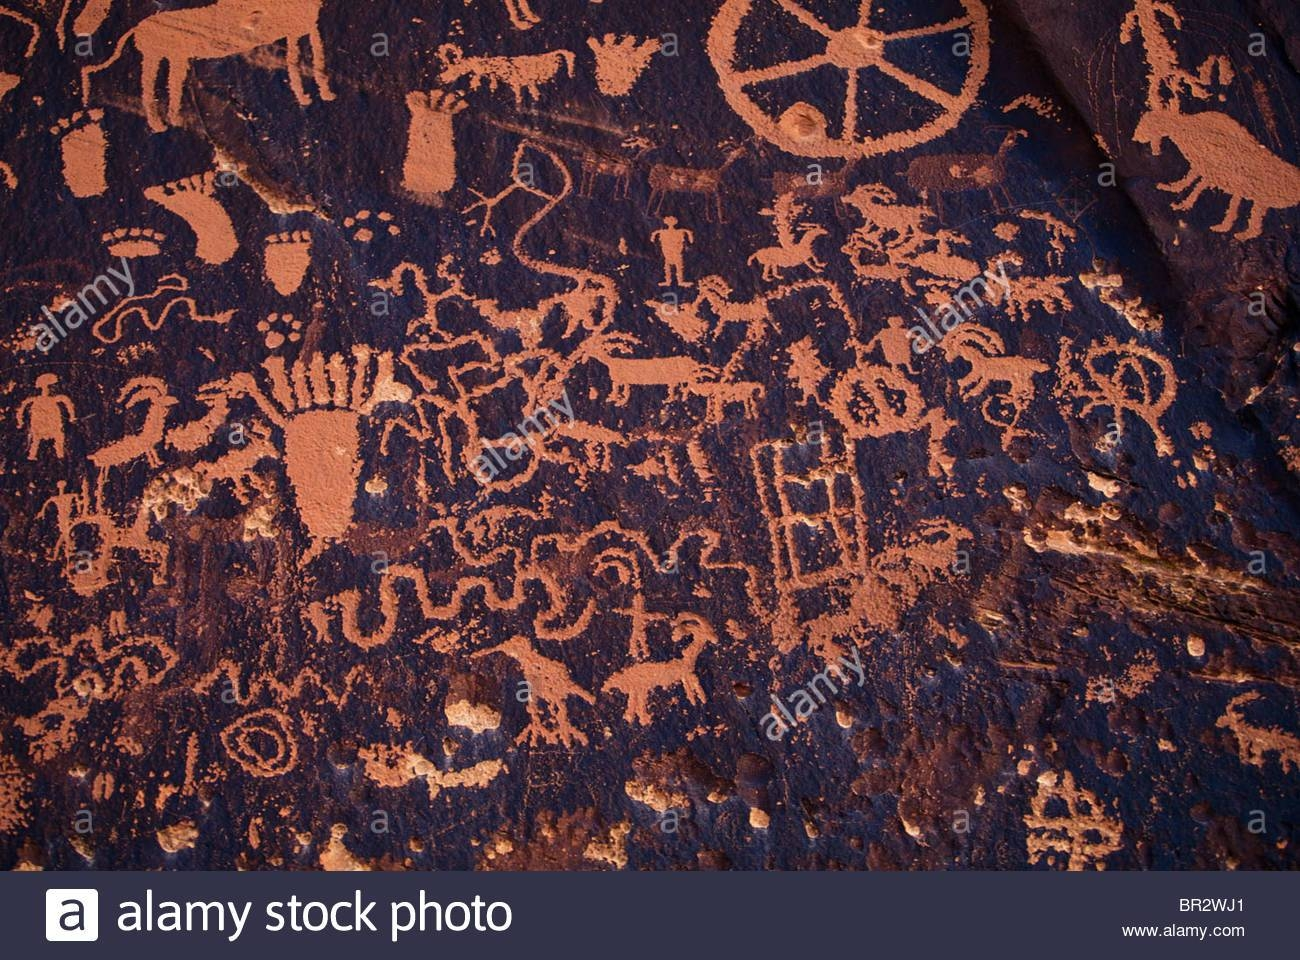 Native American Cave Art/wall Drawings Stock Photo, Royalty Free Pertaining To Newest Native American Wall Art (View 16 of 25)